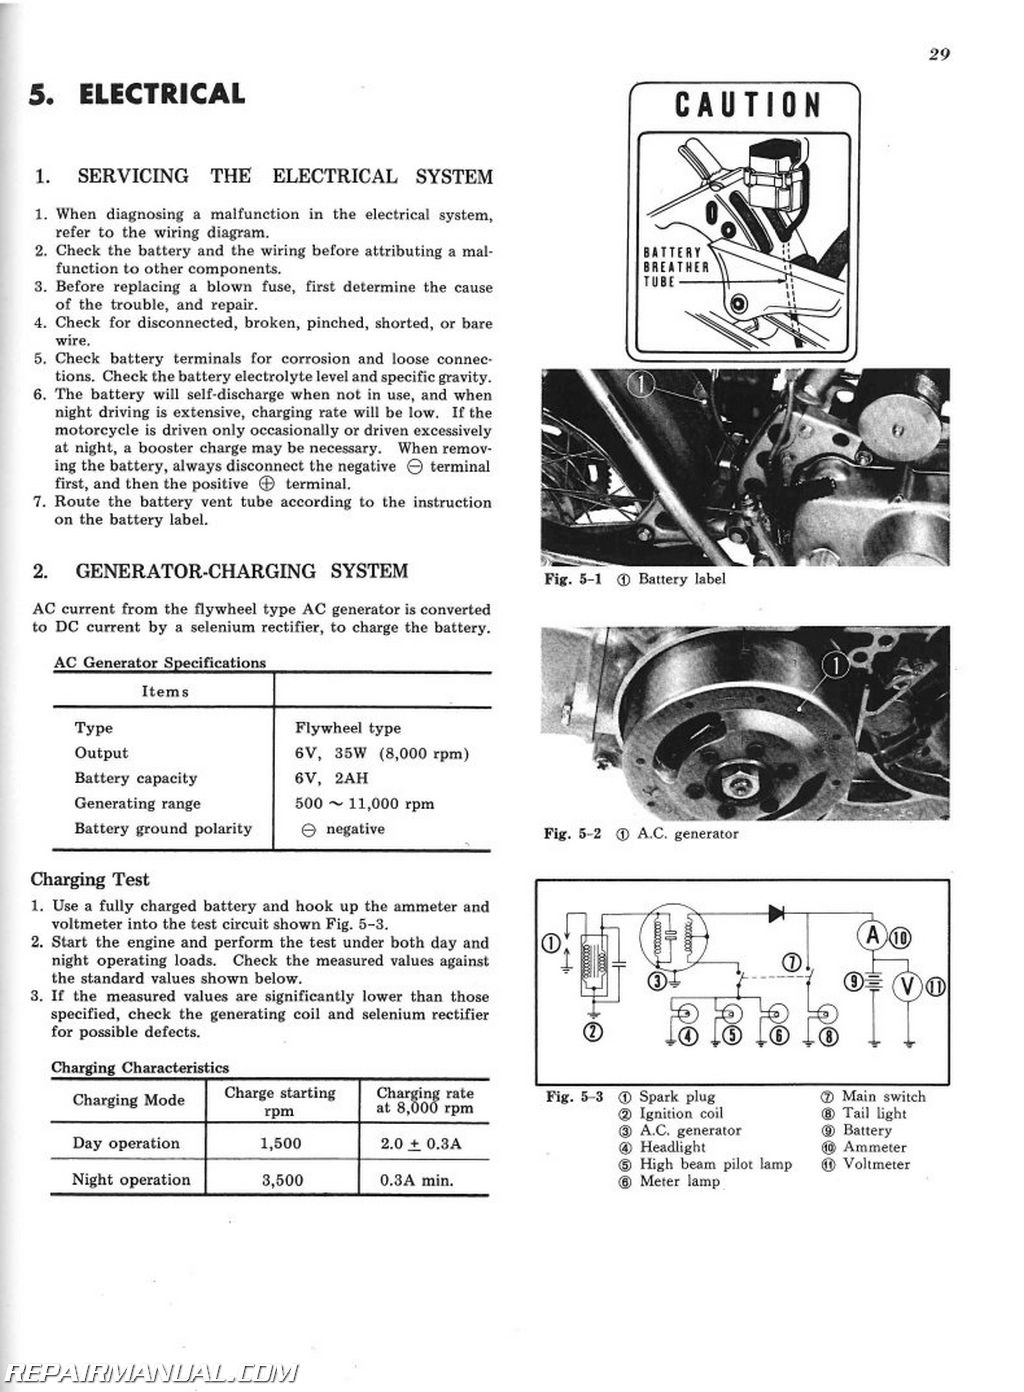 Honda Sl70 Xl70 Service Manual